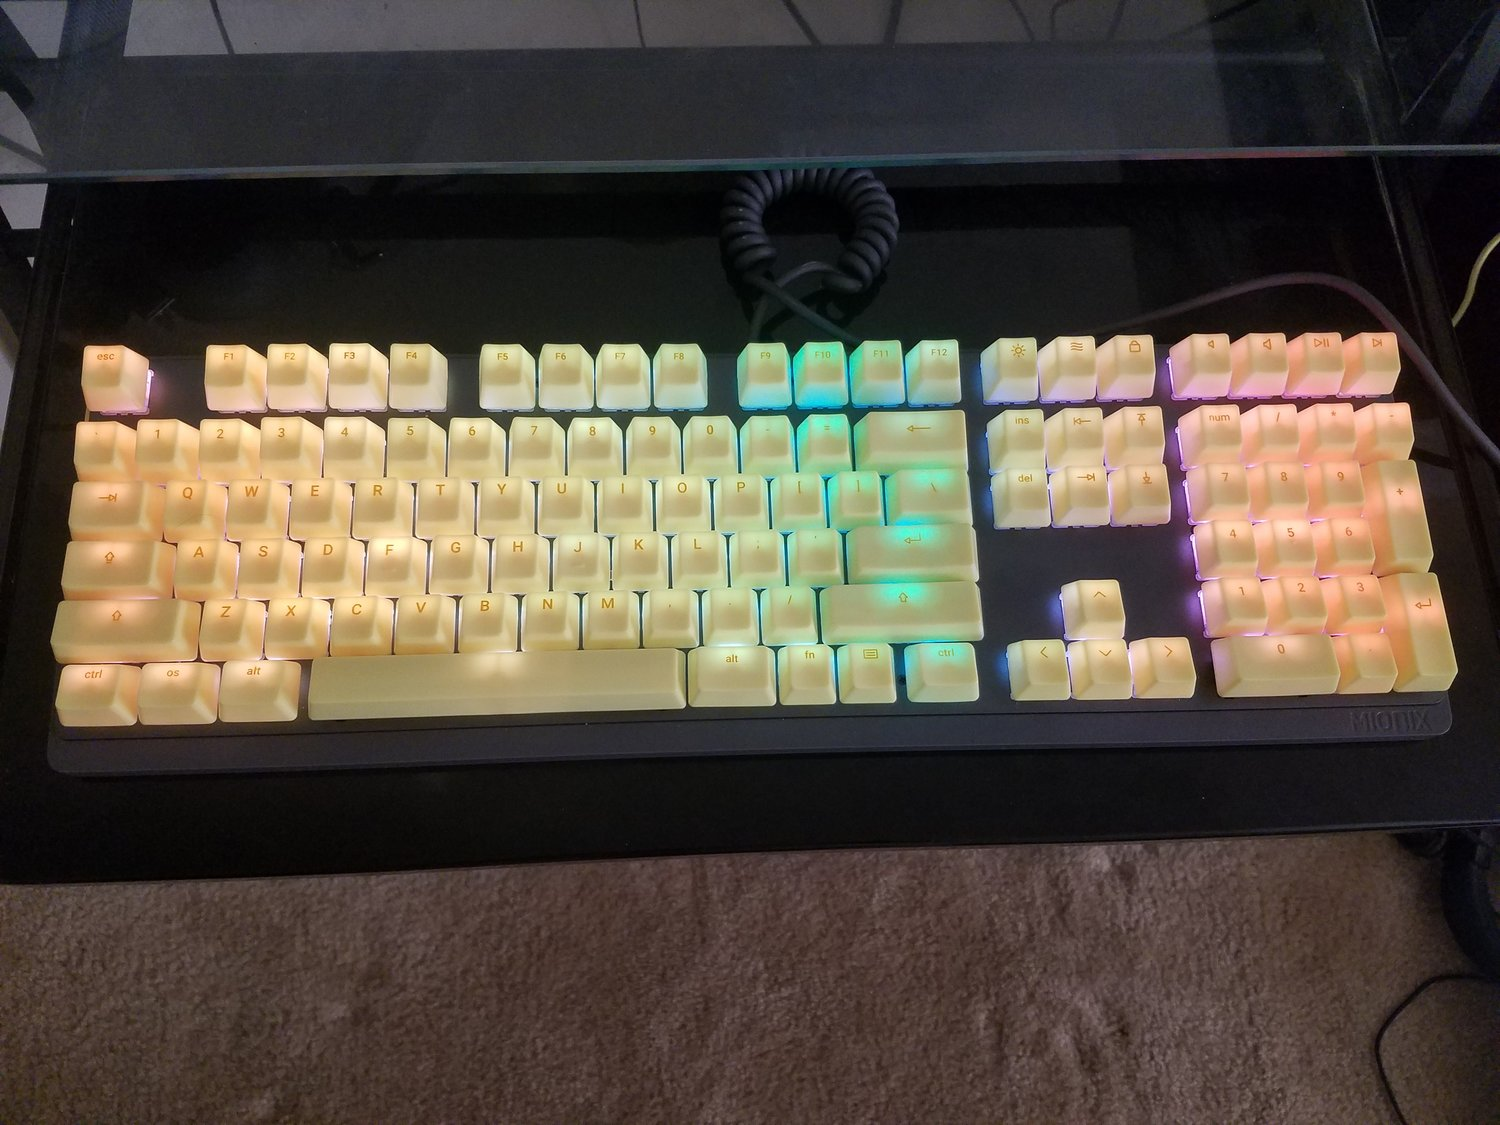 1b878a87a58 Review - Mionix Wei Mechanical Keyboard with French Fry Keycaps ...